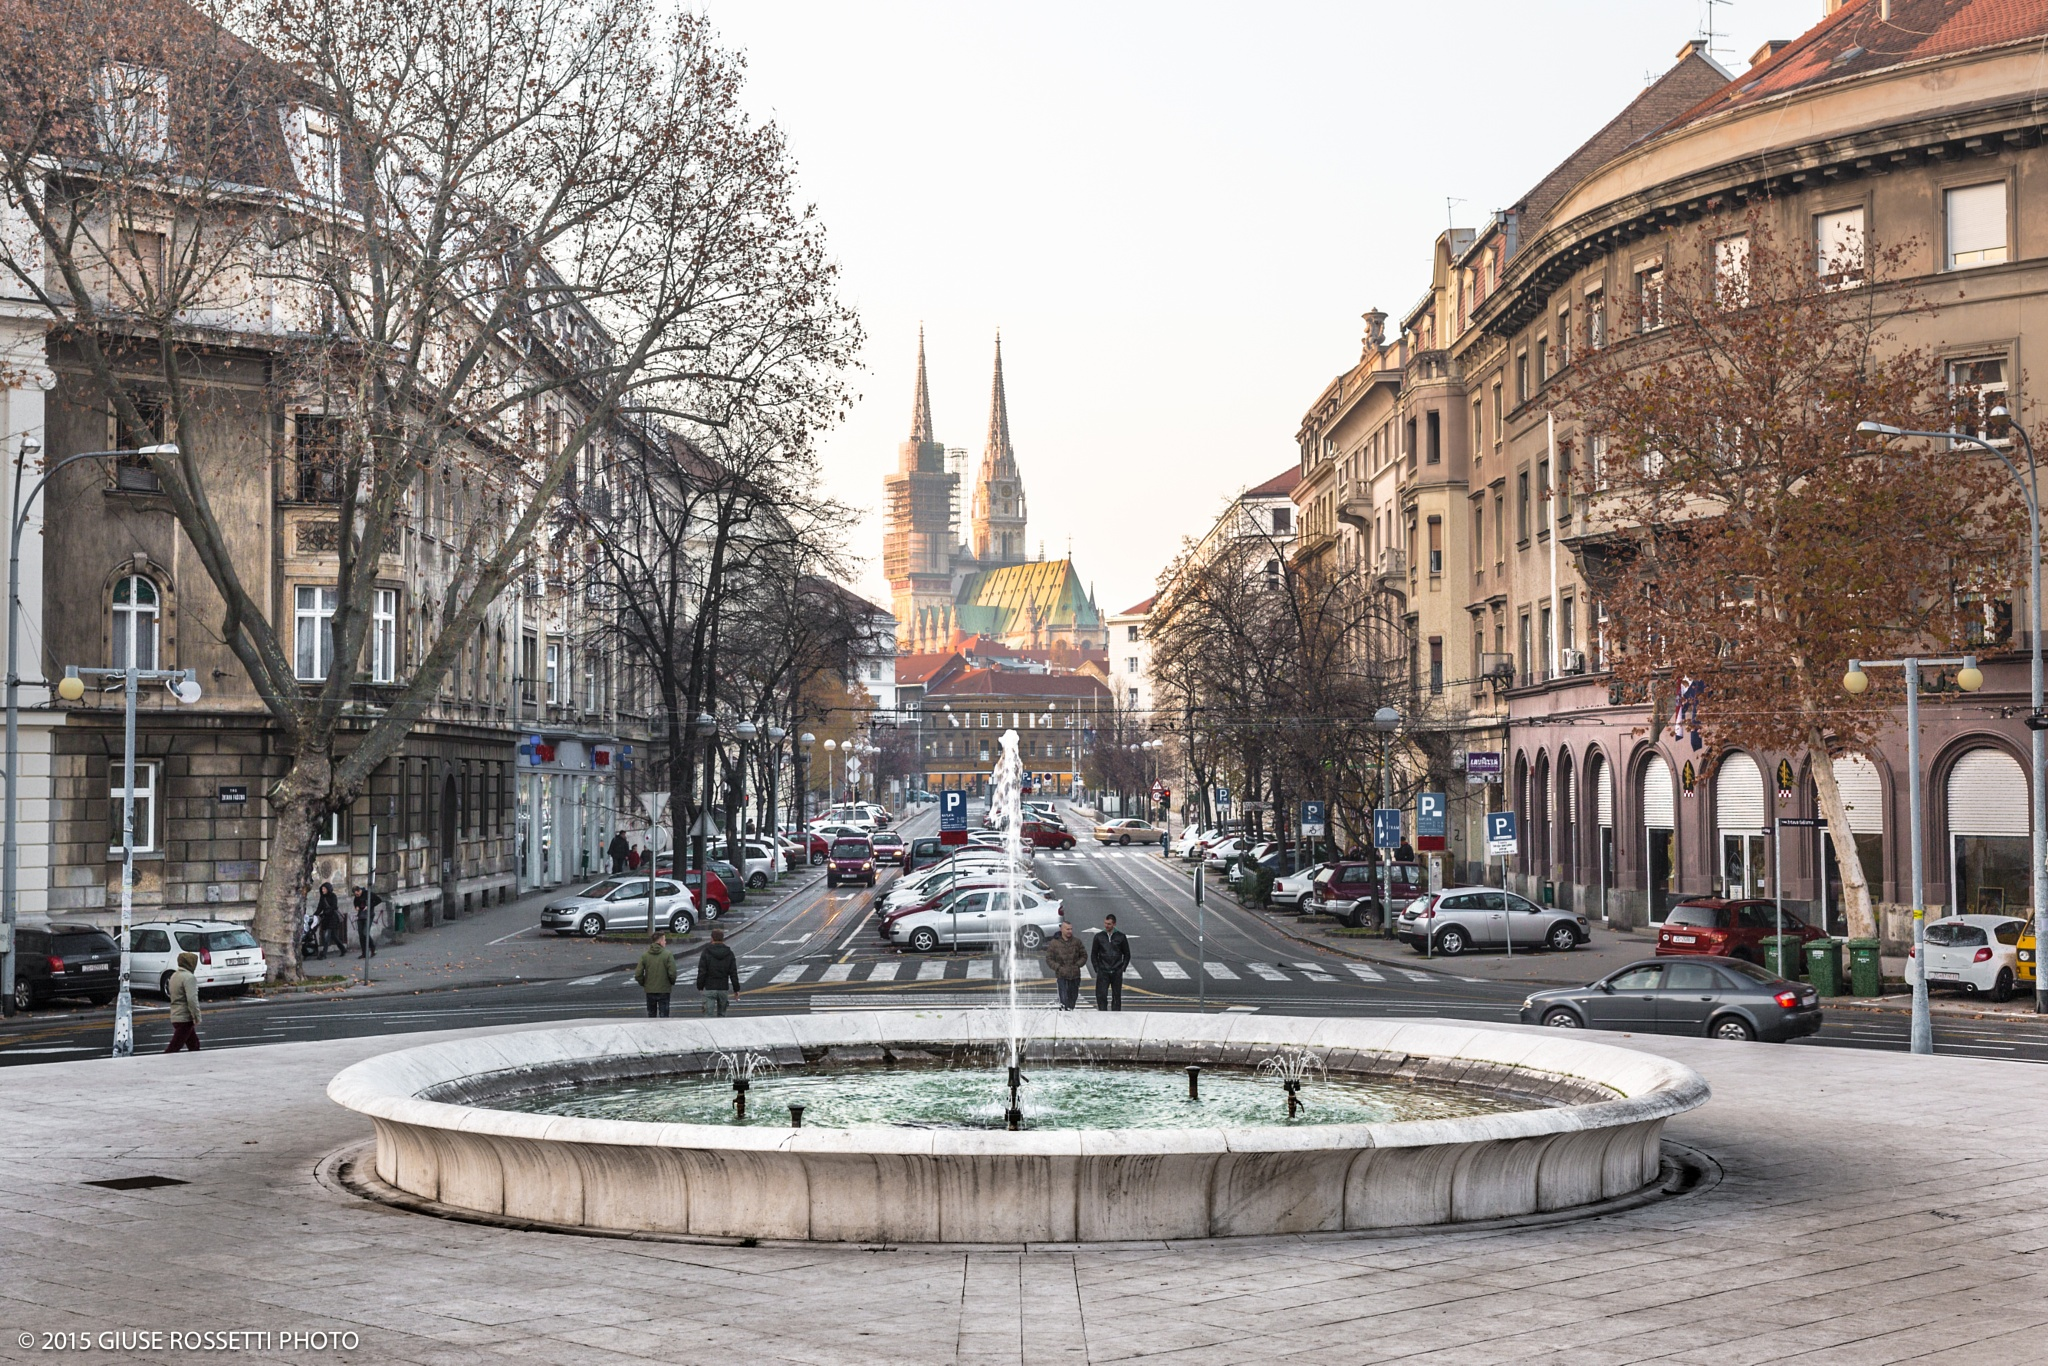 Typical prospects in Zagreb by Giuse Rossetti